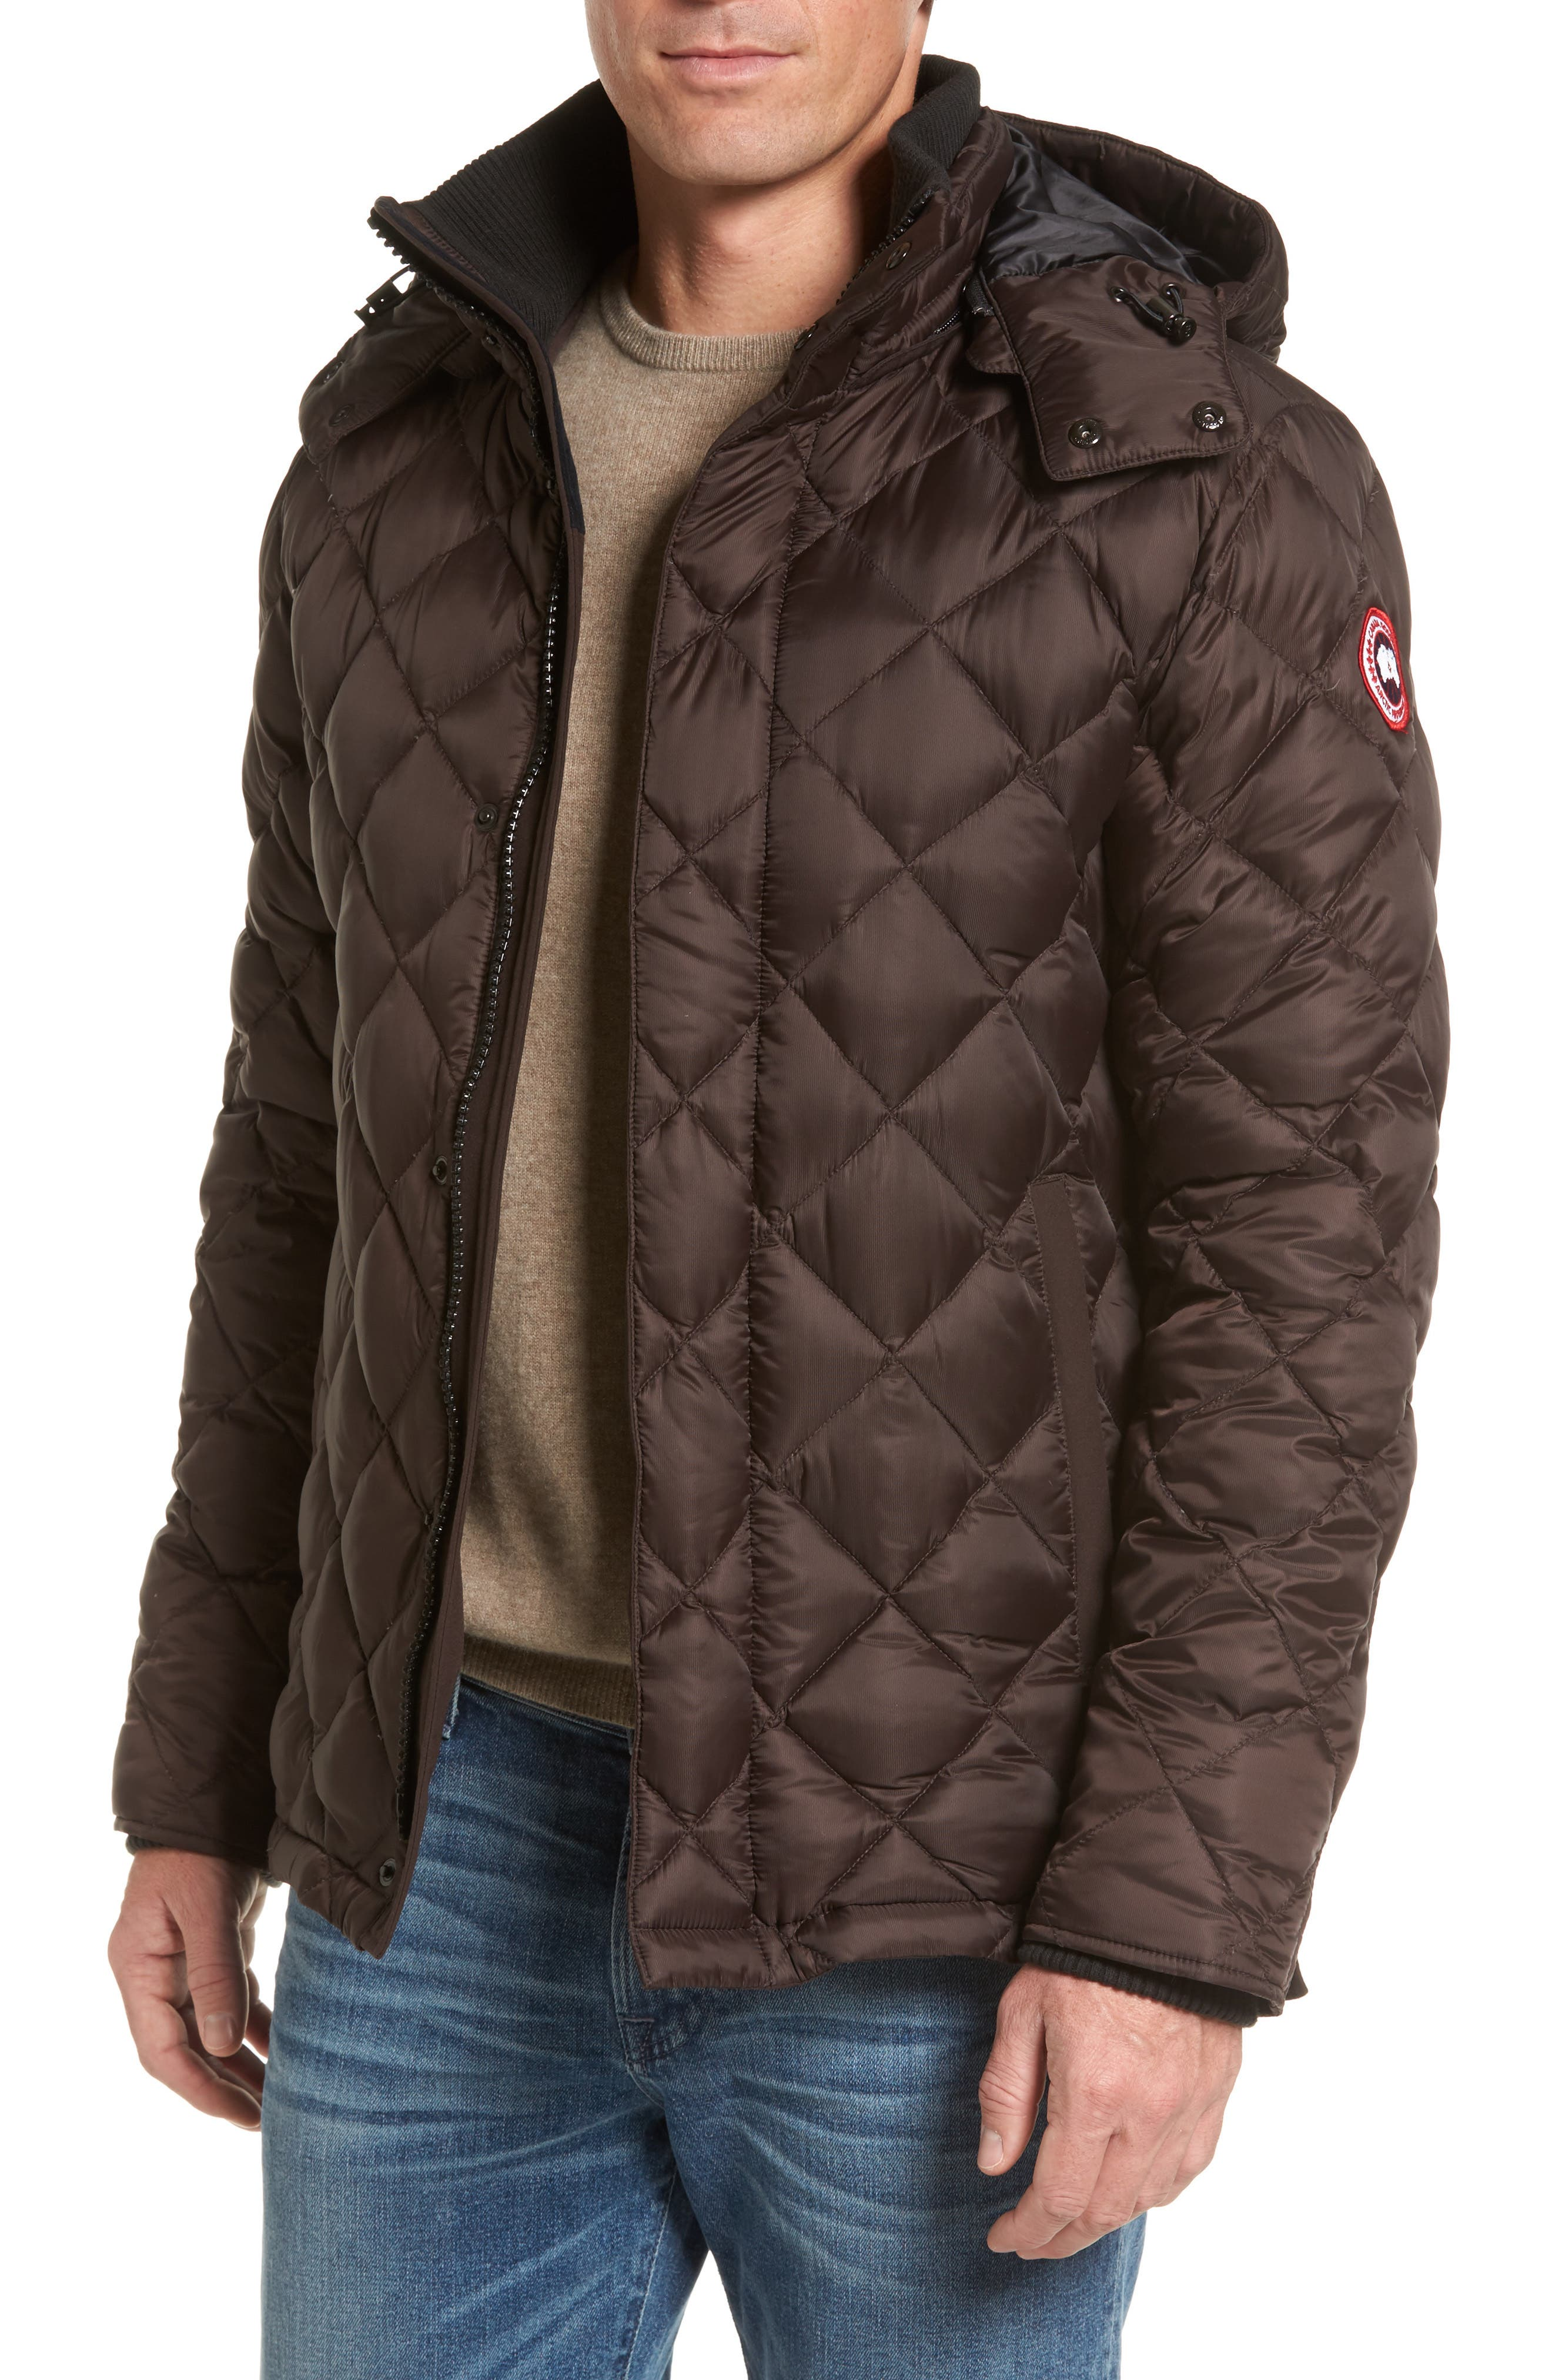 Hendriksen Quilted Down Coat,                             Main thumbnail 1, color,                             CHARRED WOOD